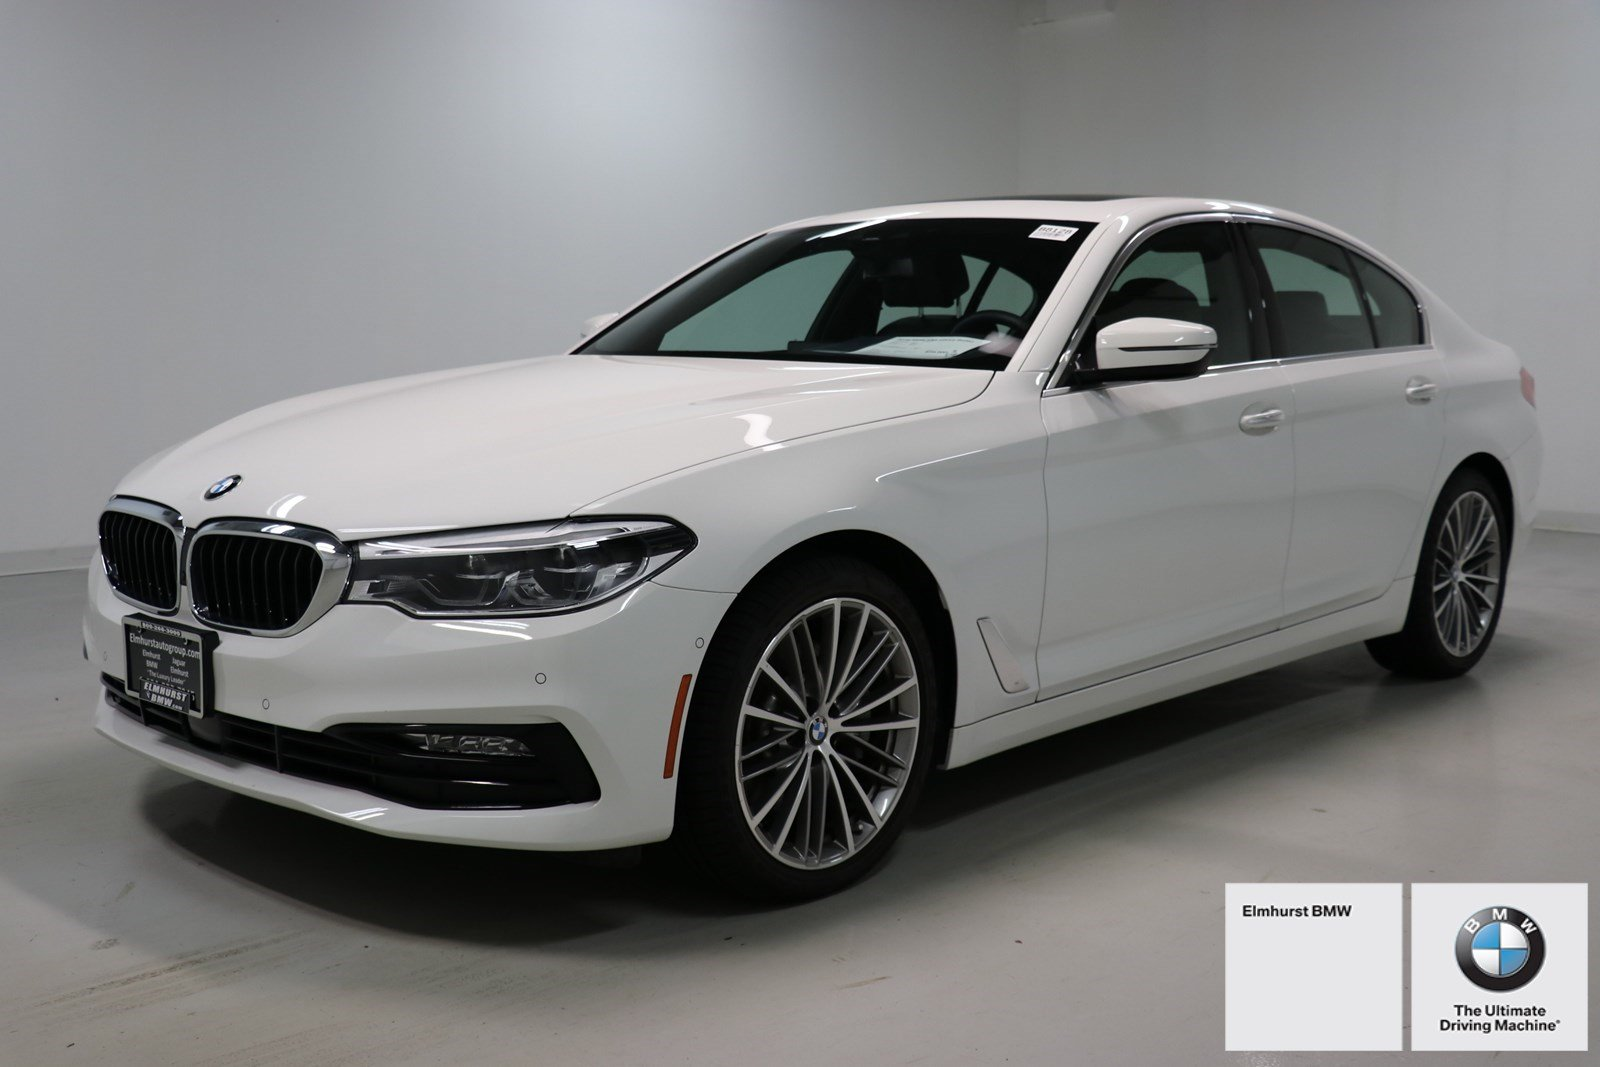 pre-owned 2018 bmw 5 series 530i xdrive 4dr car in elmhurst #b8128